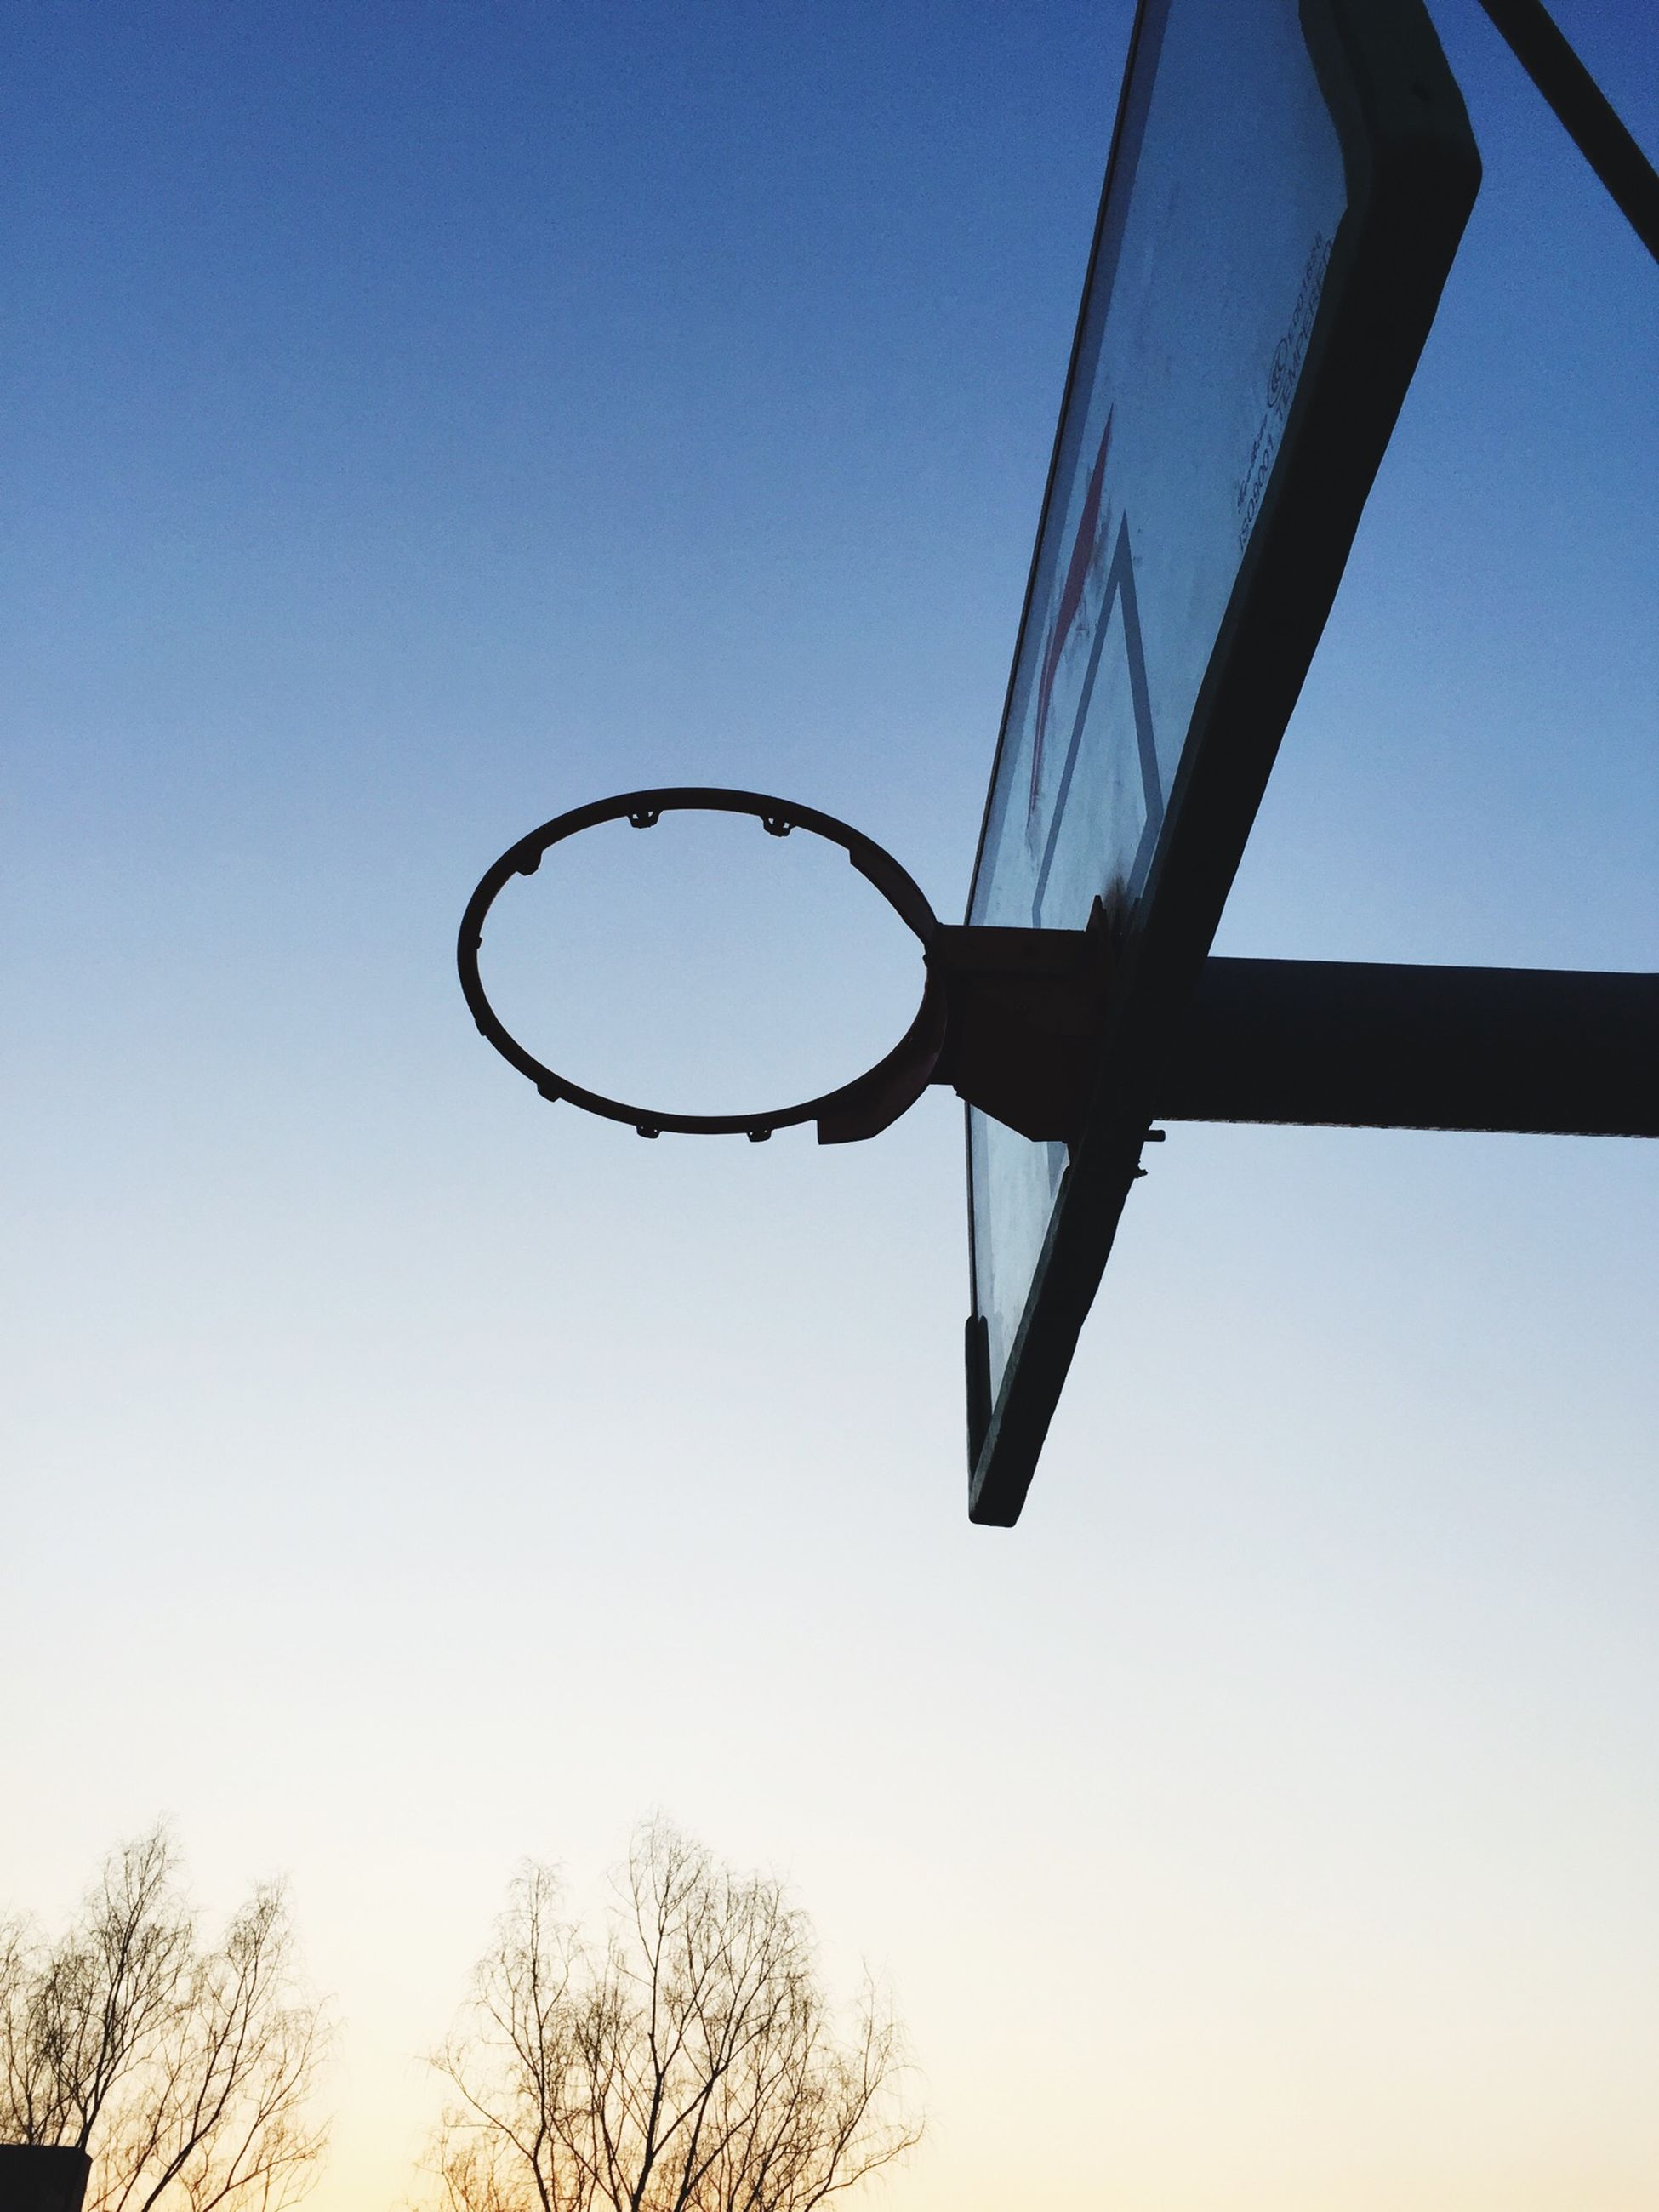 low angle view, clear sky, blue, silhouette, tree, basketball hoop, copy space, no people, metal, bare tree, sky, outdoors, day, street light, transportation, dusk, circle, branch, protection, hanging